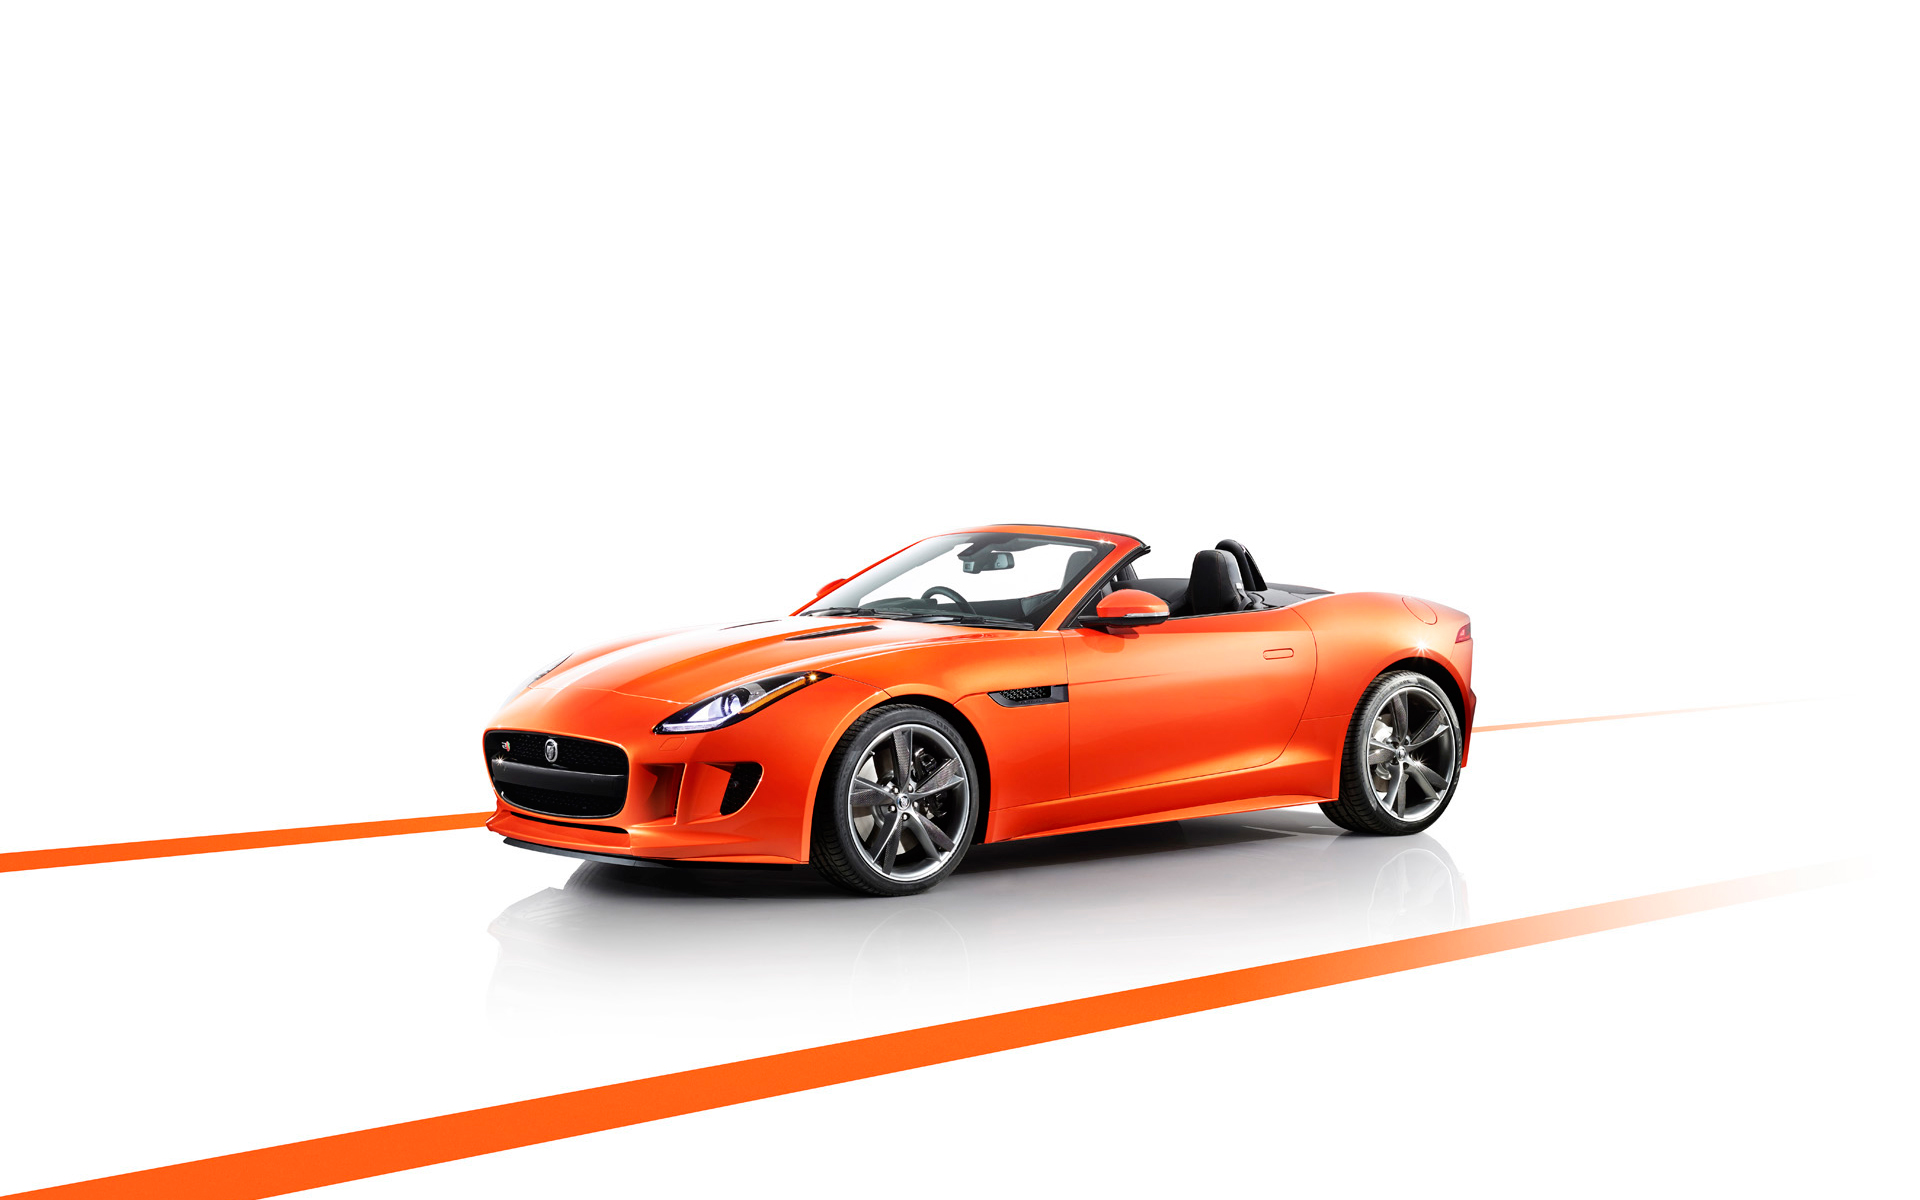 Jaguar F Type Wallpaper   iBackgroundWallpaper 1920x1200